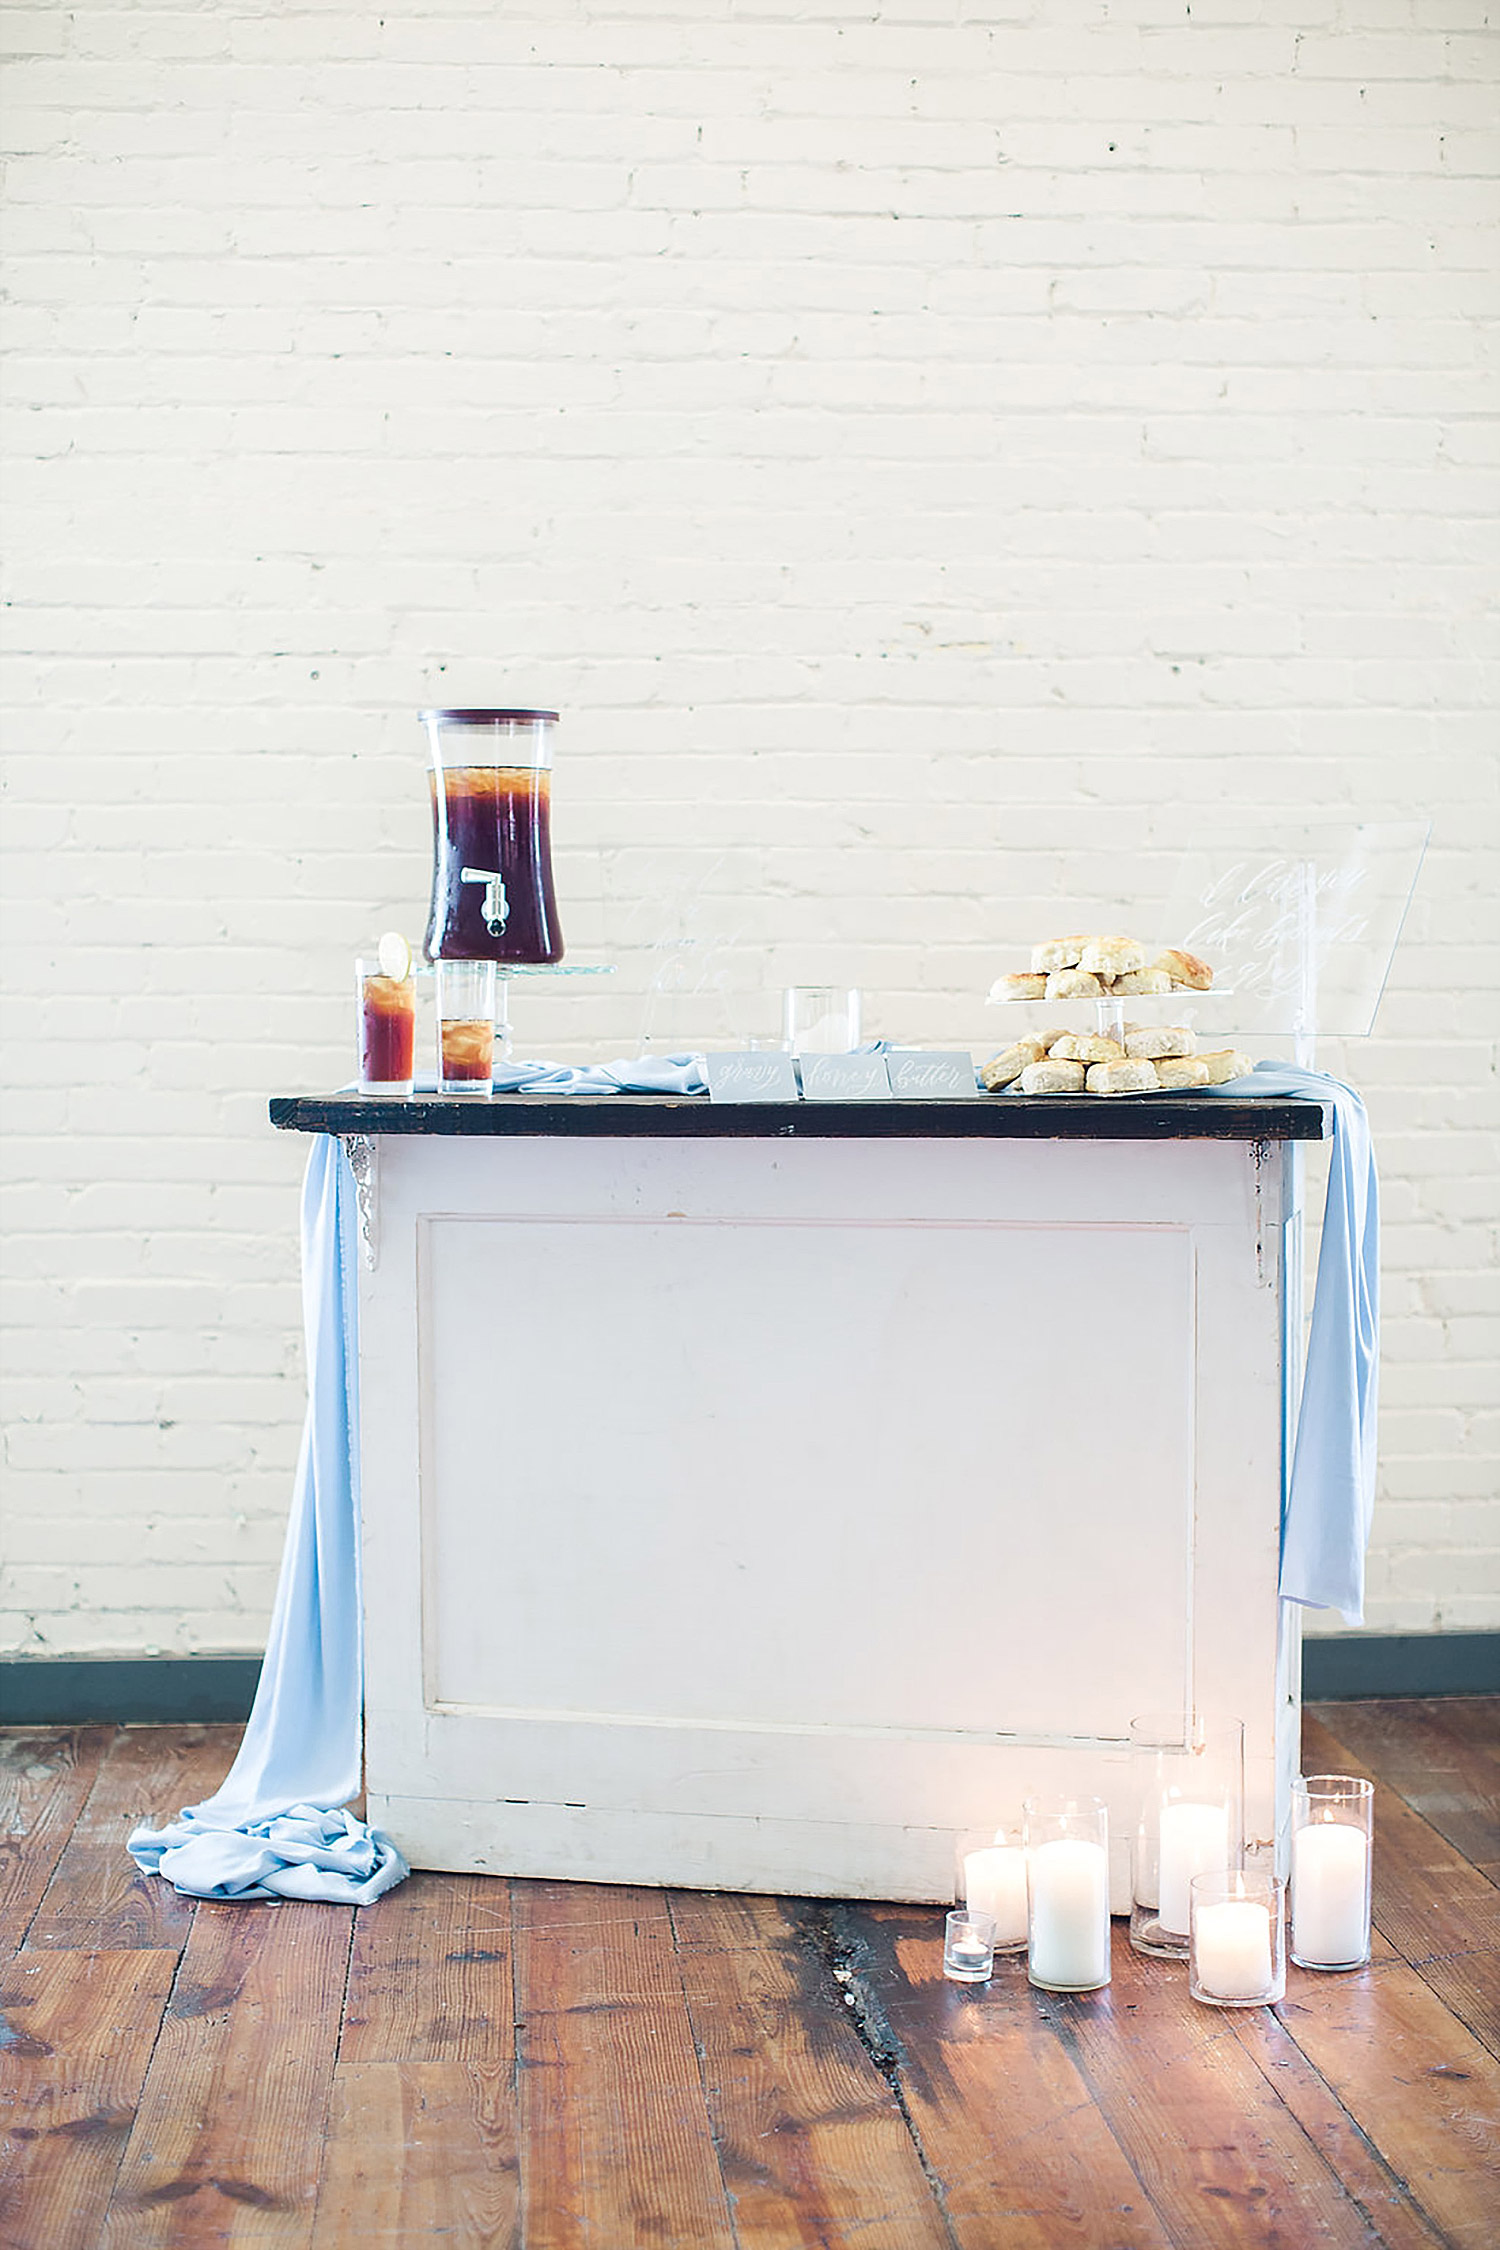 Southern wedding biscut bar with acrylic signage and sweet tea at the Brik Venue in Fort Worth.